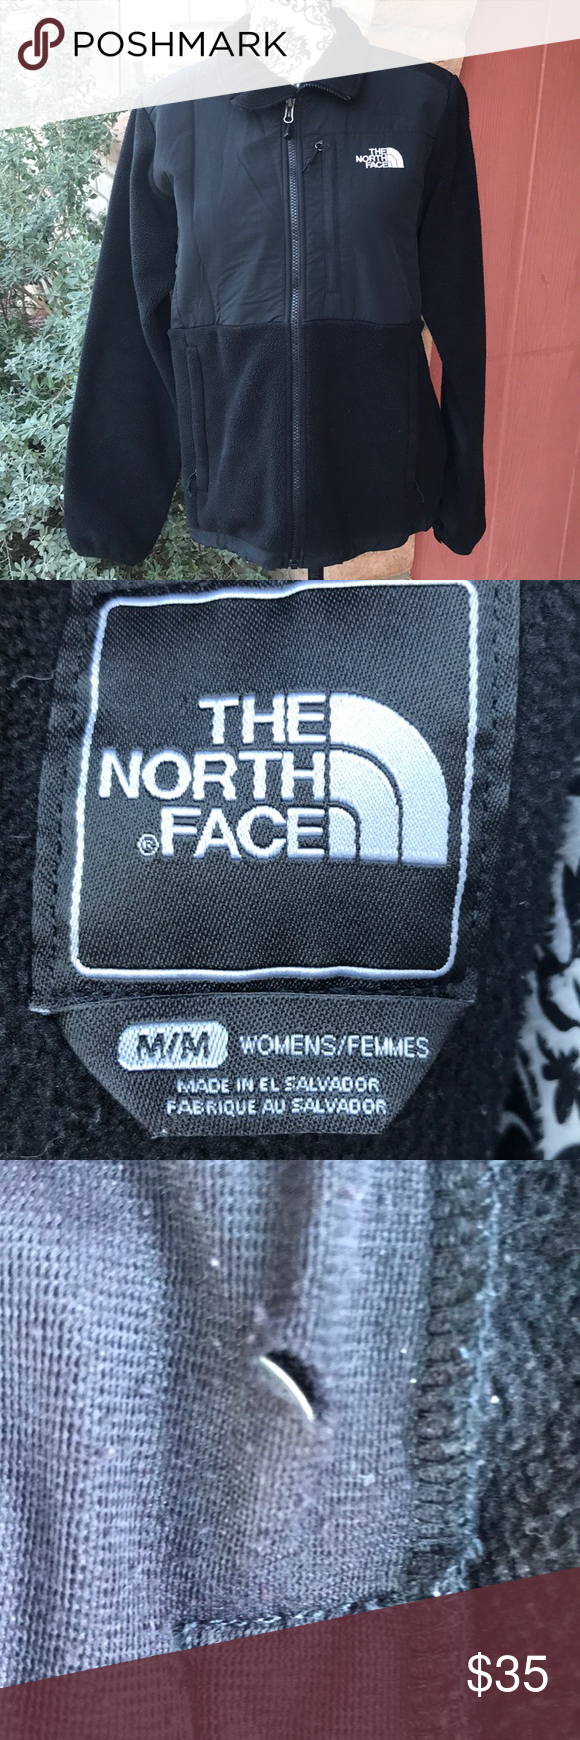 The North Face Denali Jacket Black North Face Jackets The North Face [ 1740 x 580 Pixel ]